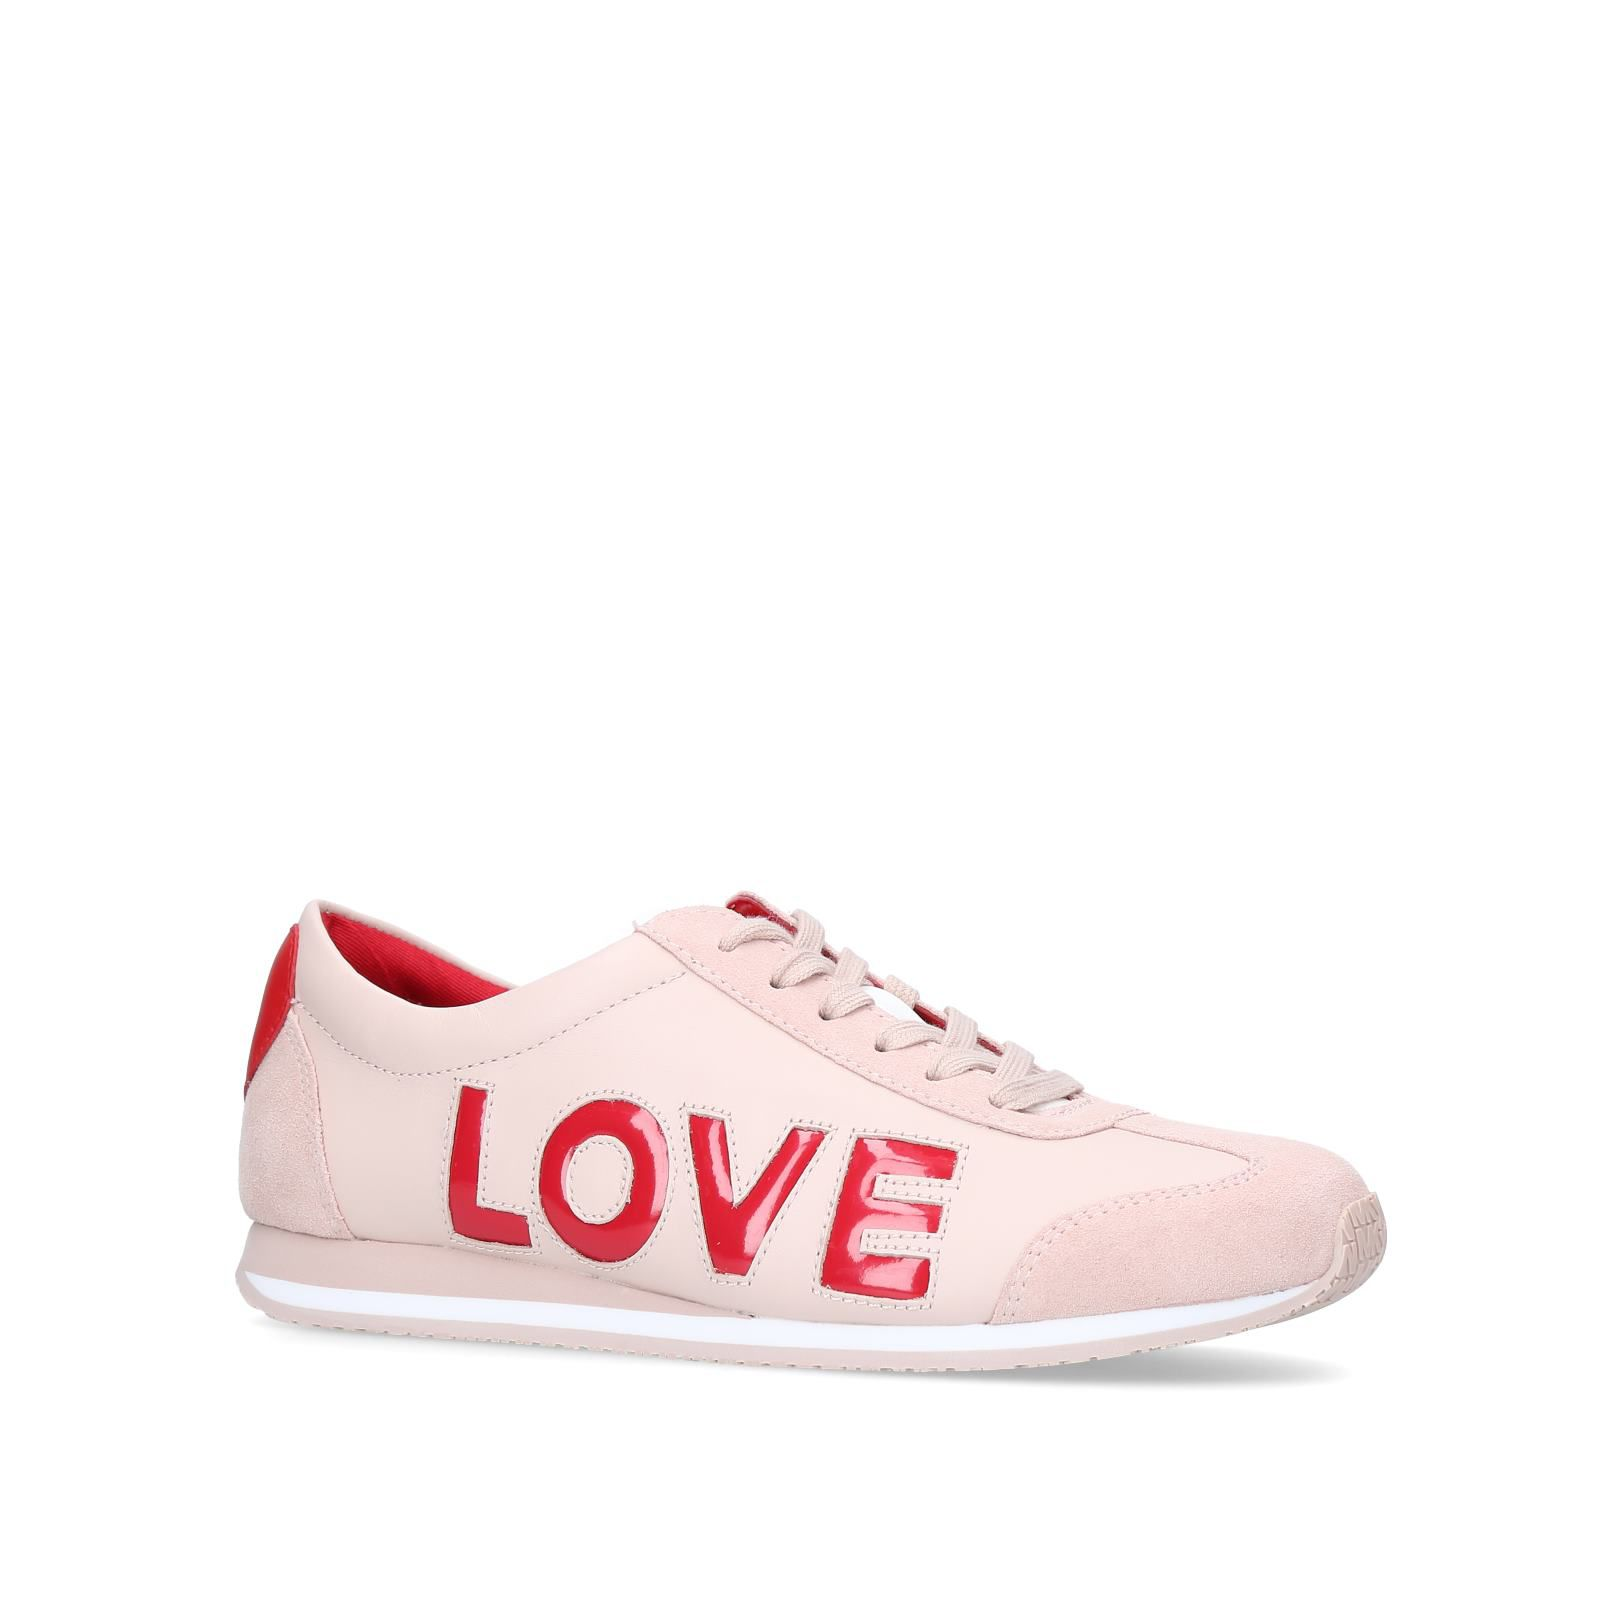 Michael Kors Kaile Love Trainer Trainers, Pink